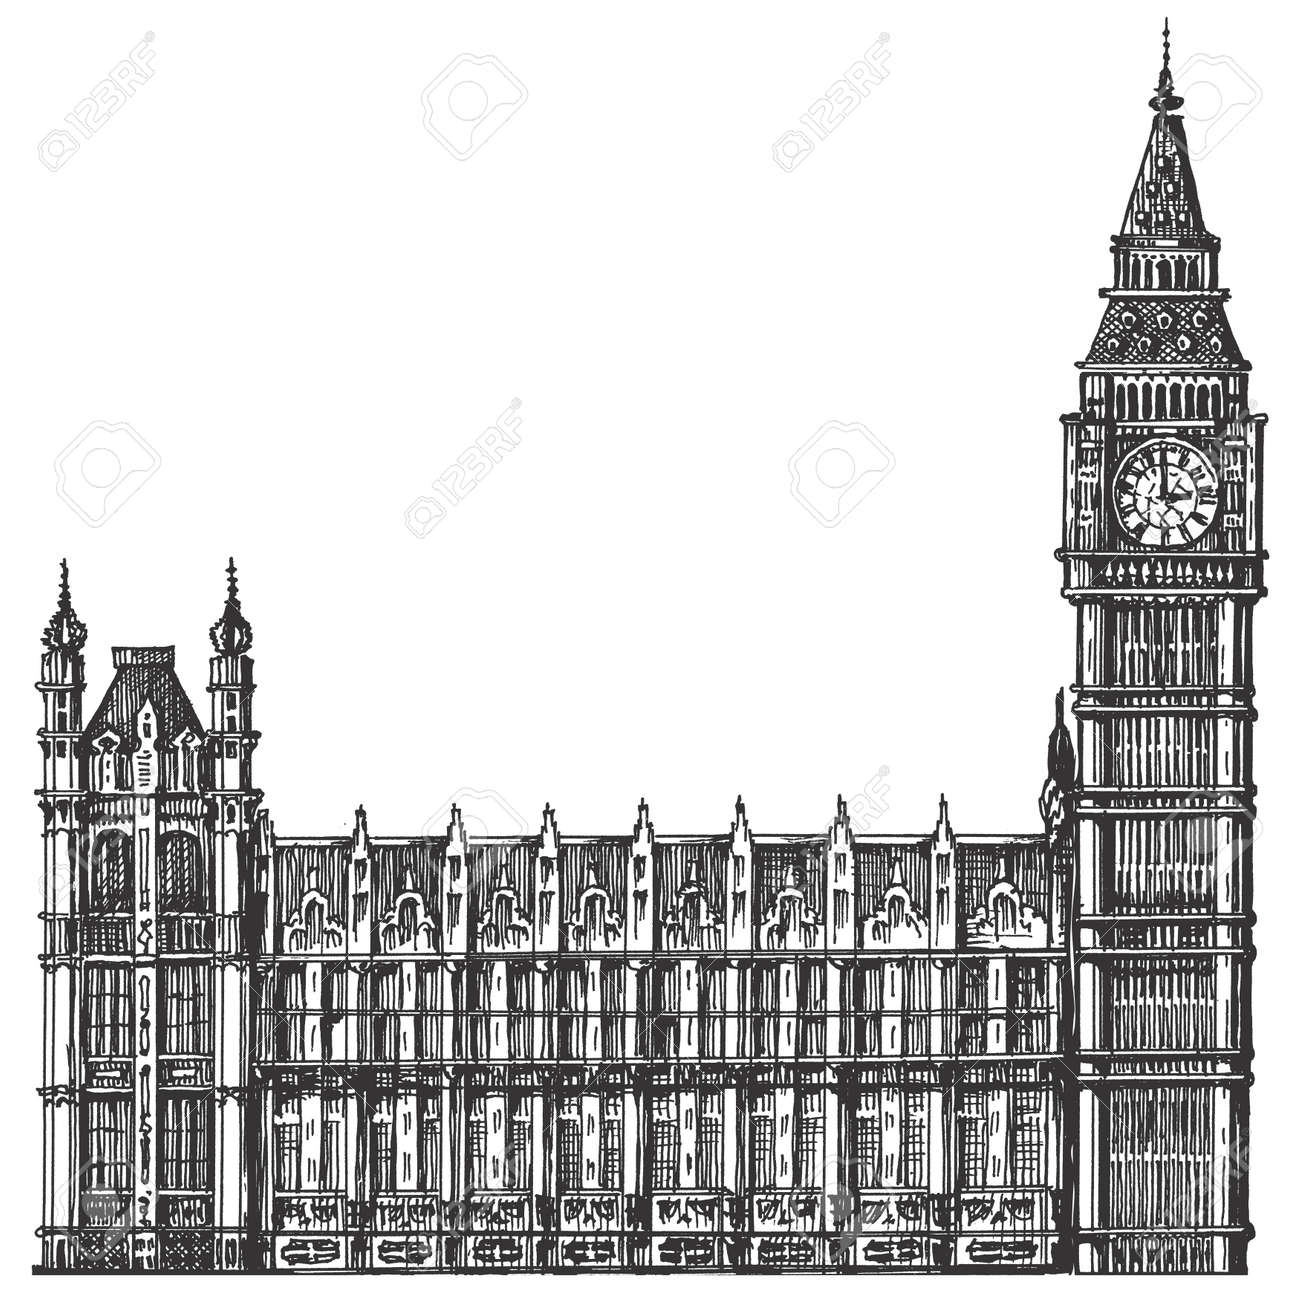 3,014 City Big Ben Stock Vector Illustration And Royalty Free City ...